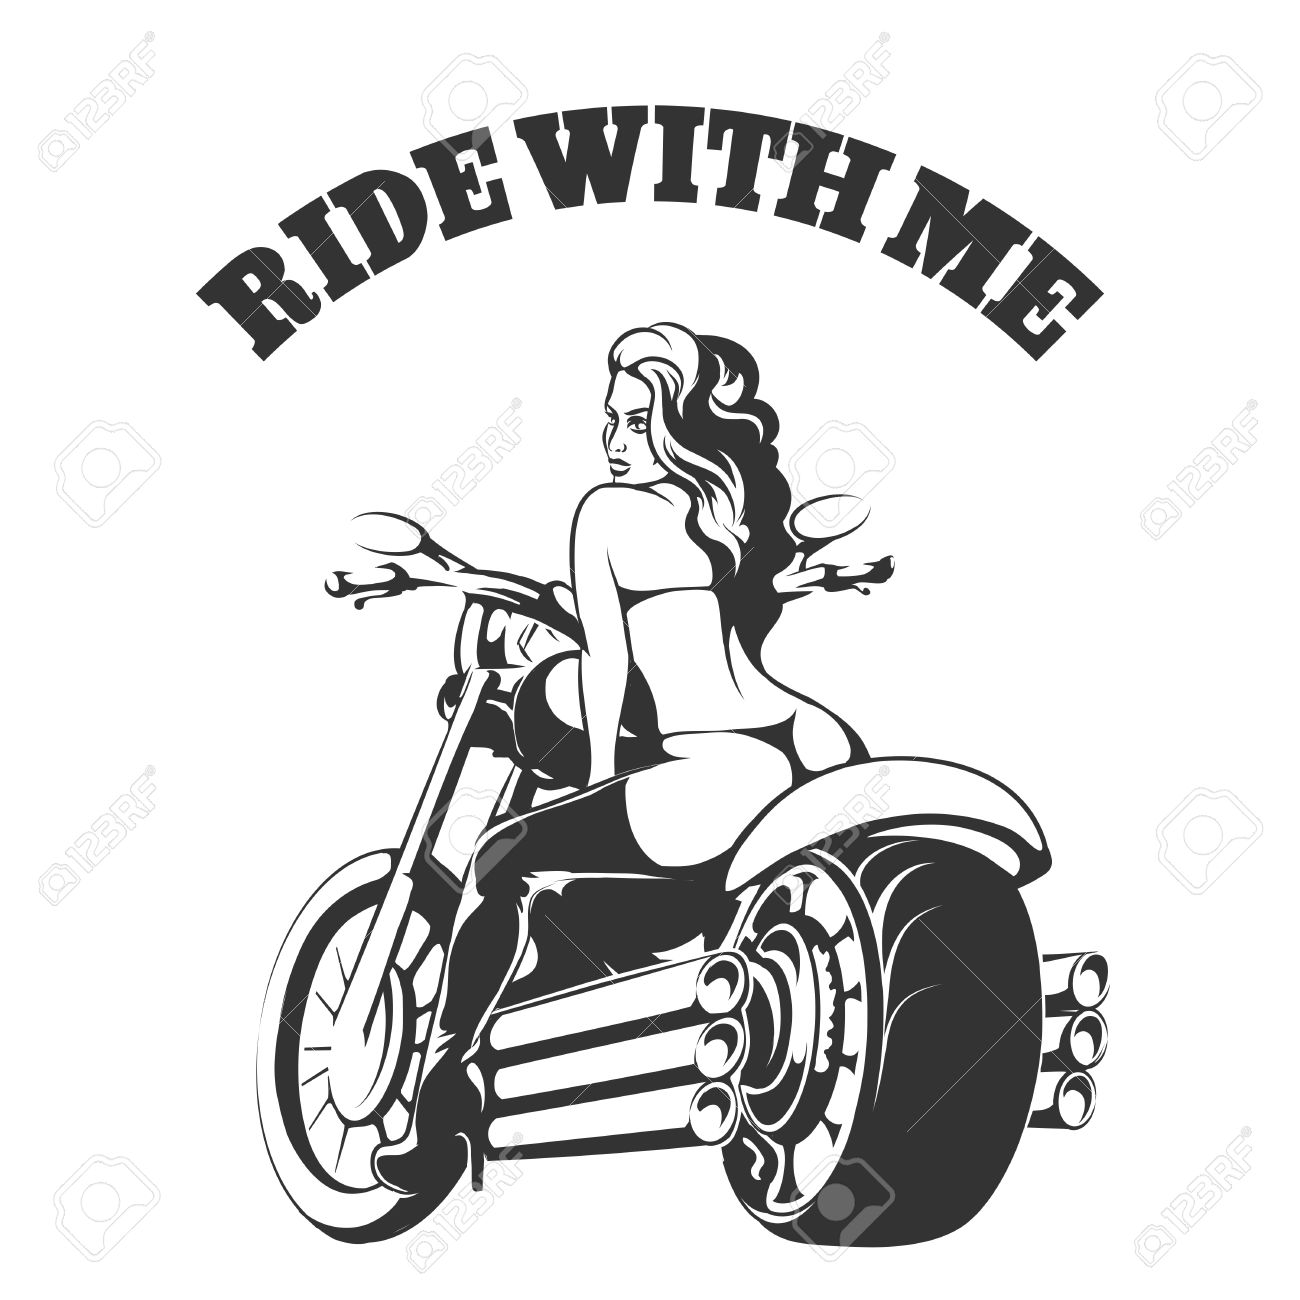 Pin up motorcycle line art jpg - Pinup Sexy Biker Girl In Bikini And Boots On A Motorcycle With Wording Ride With